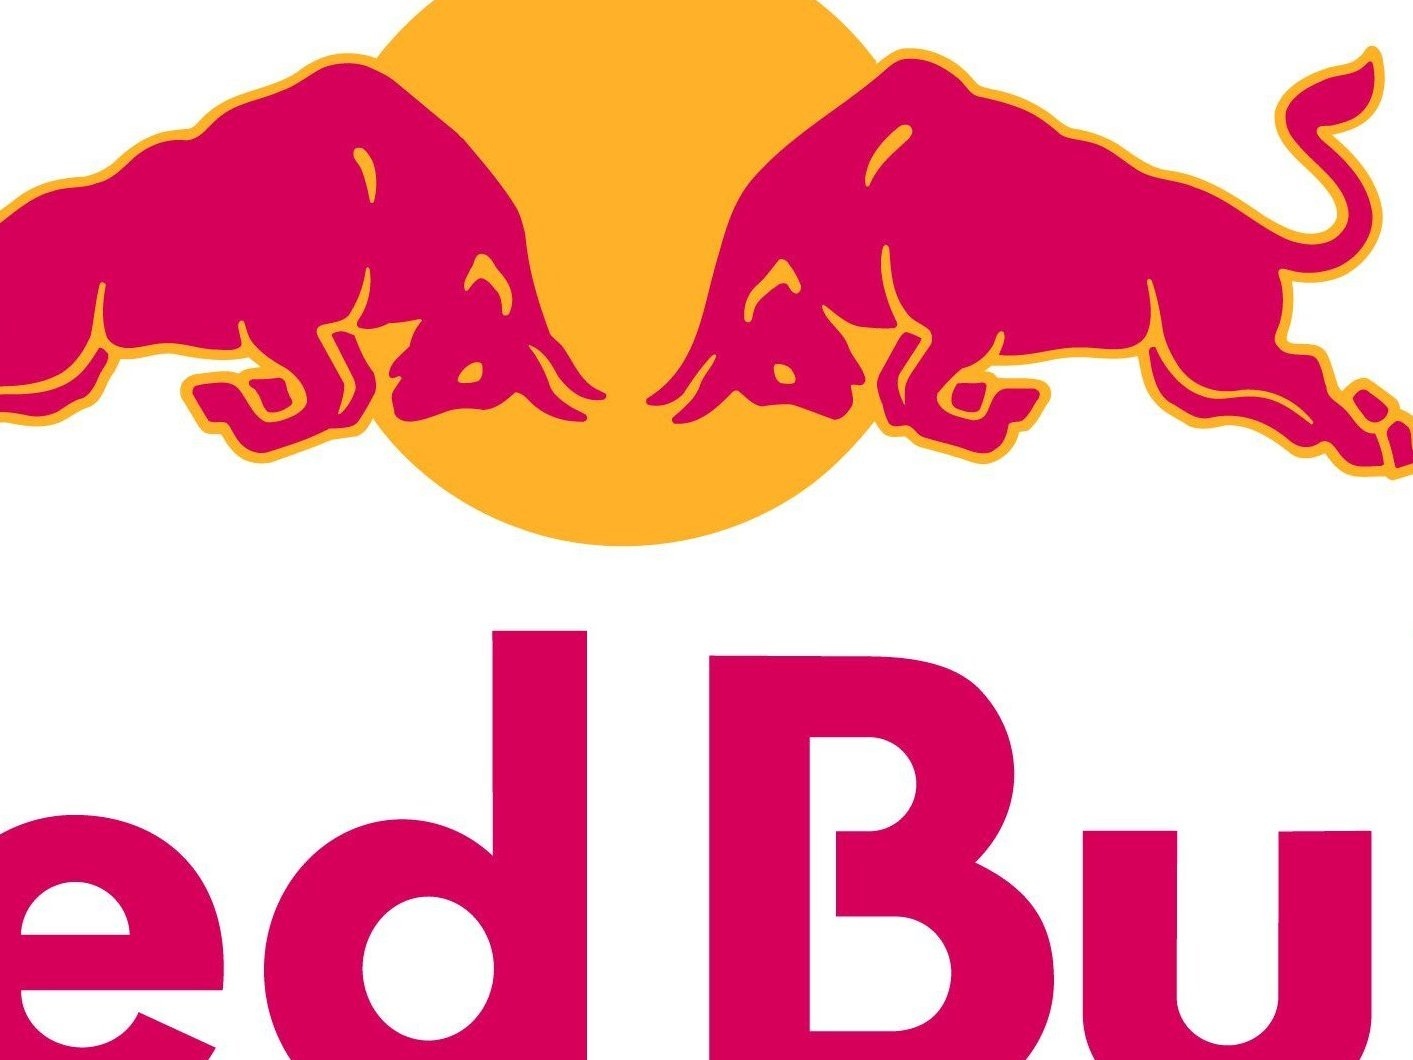 red bull promtional mix Red bull - promotional mix essay  describe the promotional mix used by red bull red bull was originally established in thailand in 1962 under the name krating daeng, red bull was incorporated in 1984 with its head office in austria - red bull - promotional mix essay introduction.